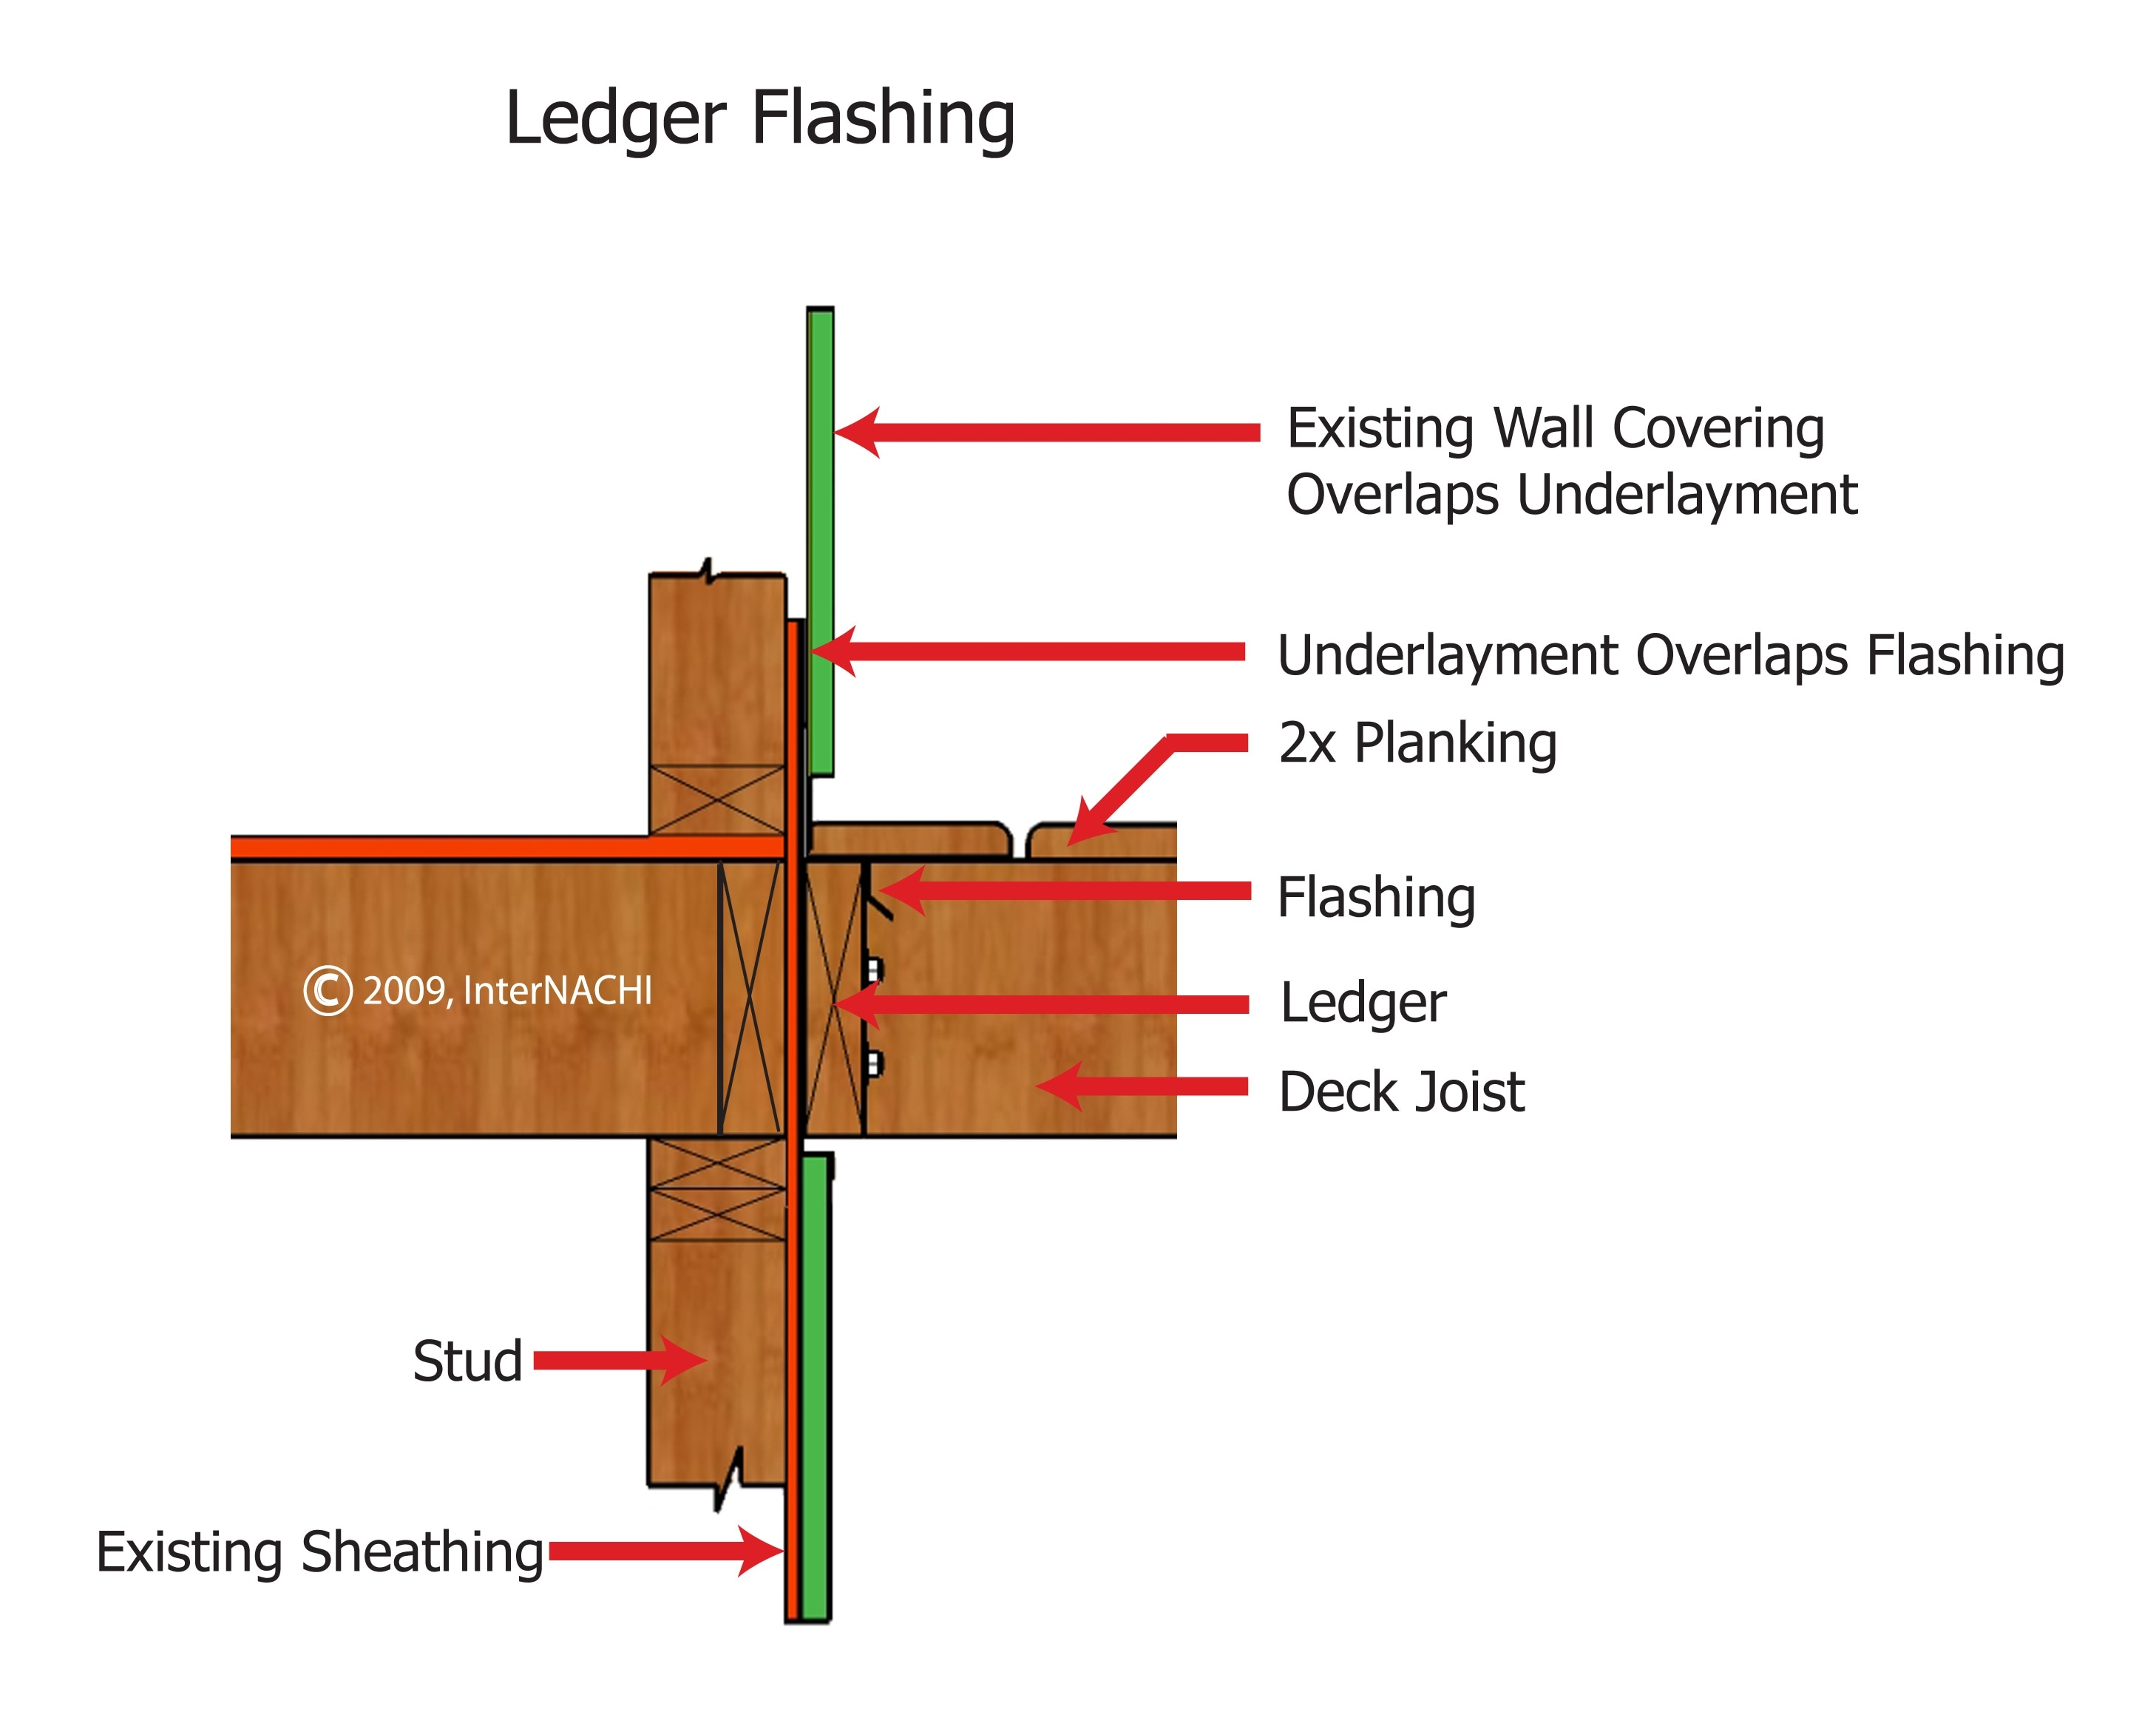 Ledger flashing.